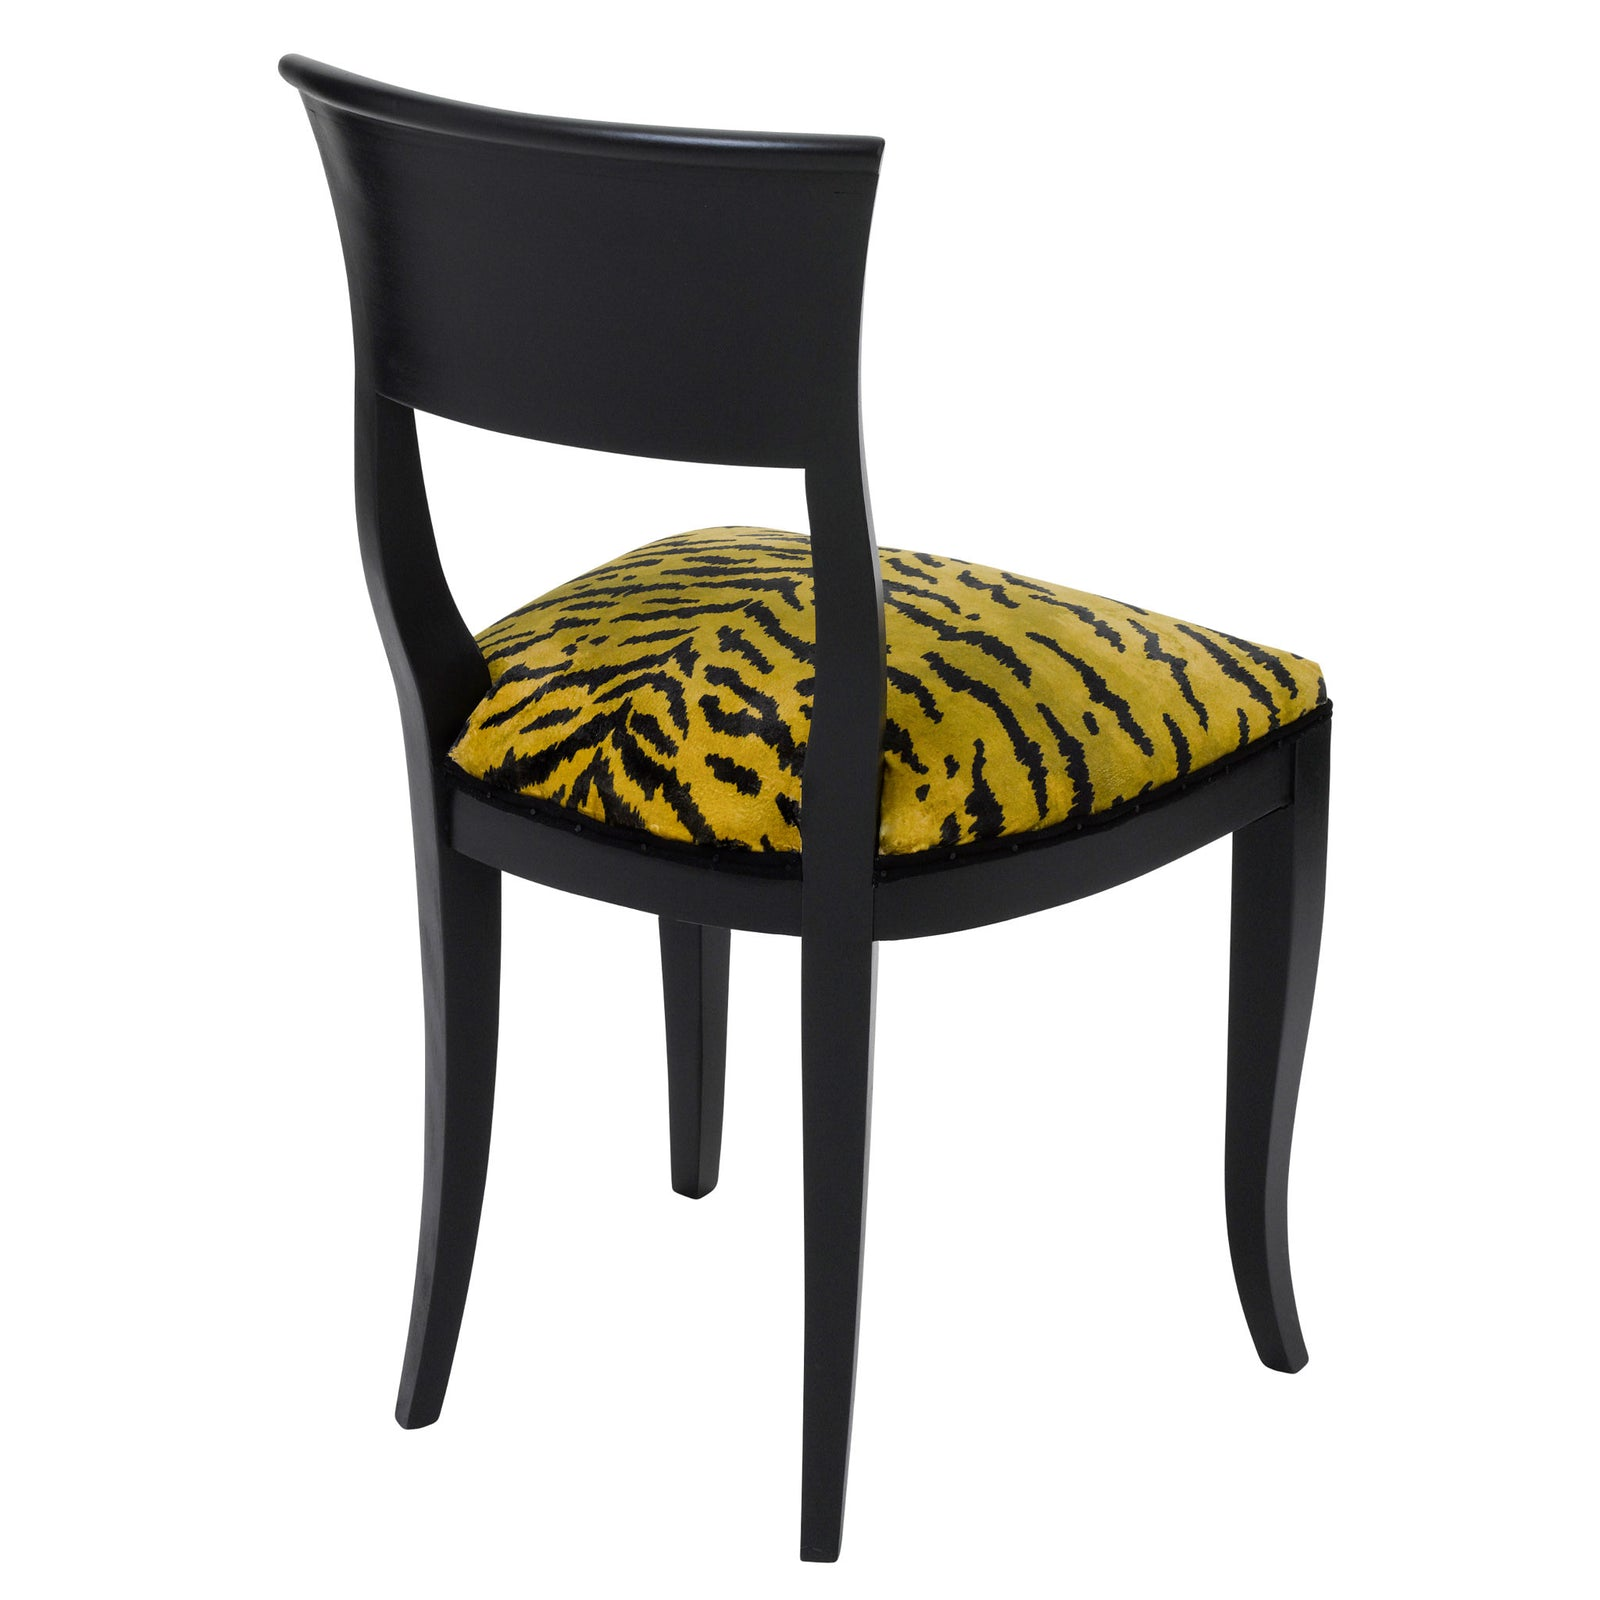 Rear  view of the Kate art deco dining chair upholstered in Tiger print fabric from House of Hackney  finished in Matte Black.